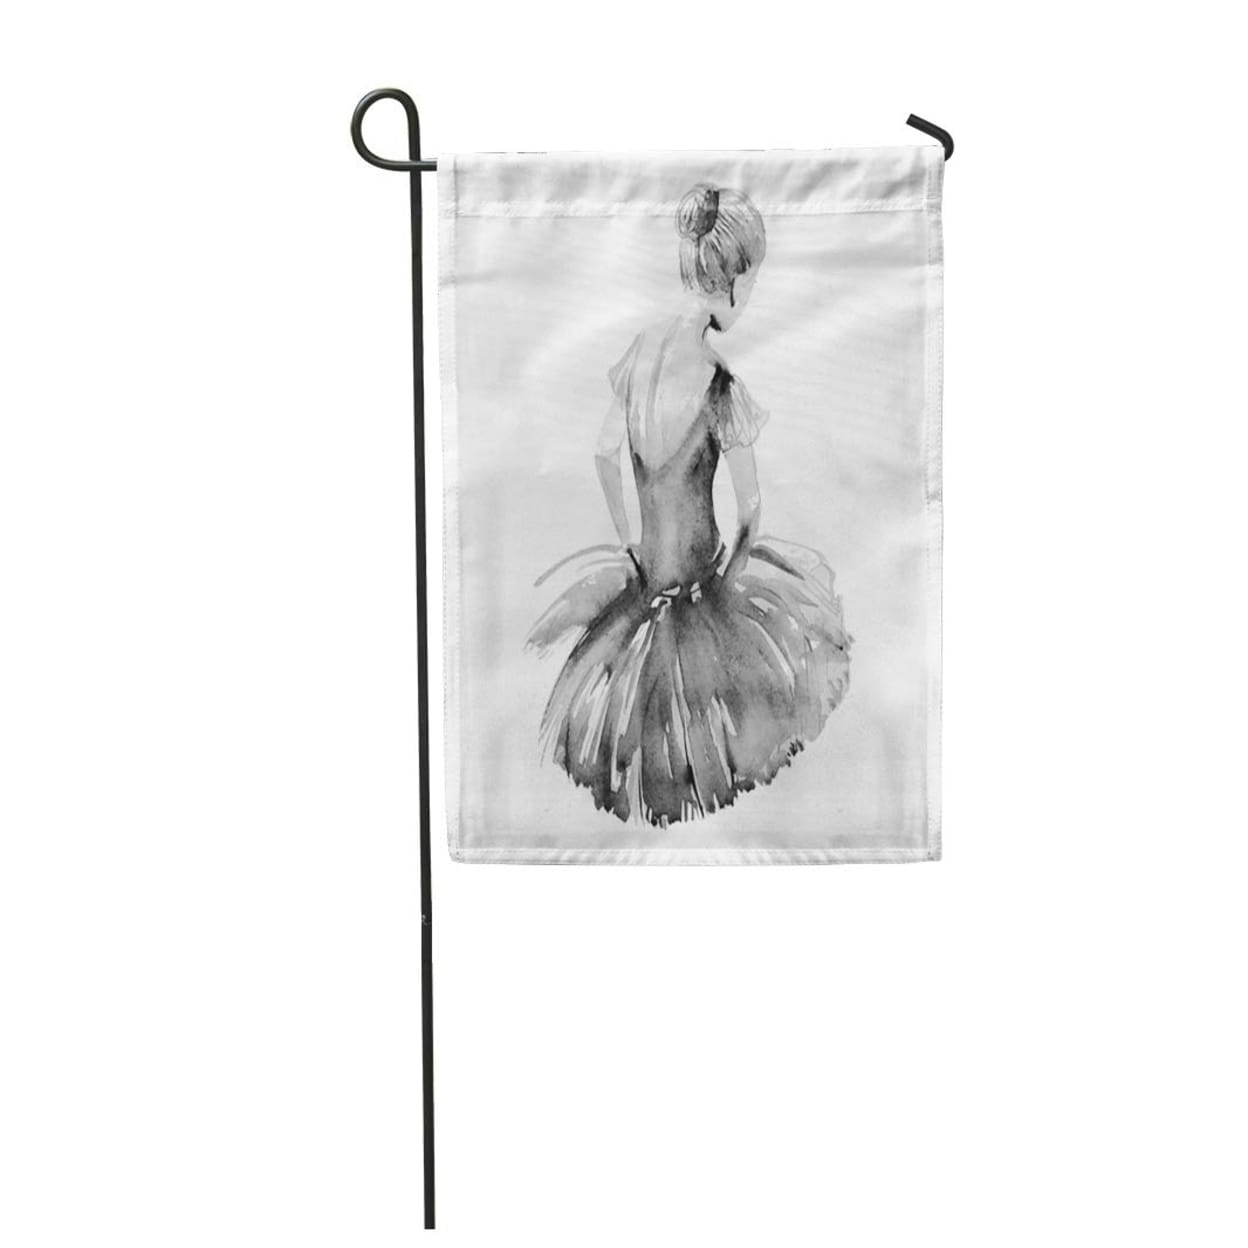 Shop Ballet Hand Drawing Watercolor Ballerina Dancer Dance Woman Shoes Silhouette Garden Flag Decorative Flag House Banner On Sale Overstock 31386662